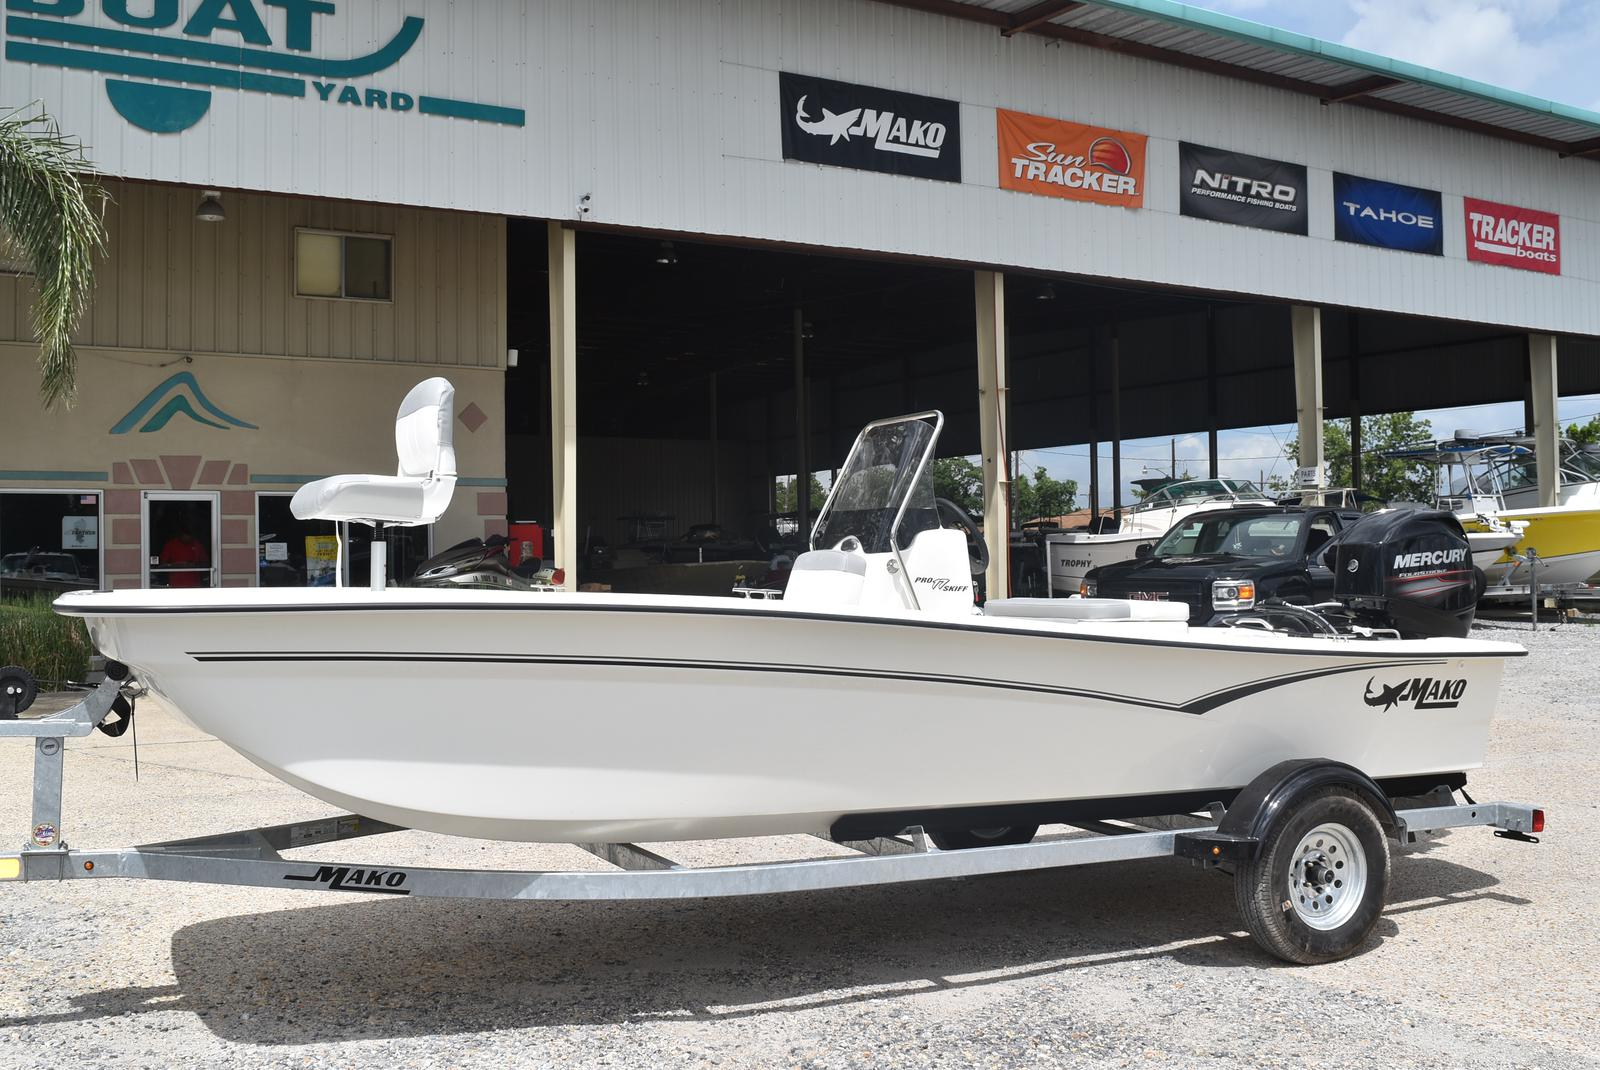 2020 Mako boat for sale, model of the boat is Pro Skiff 17, 75 ELPT & Image # 140 of 702